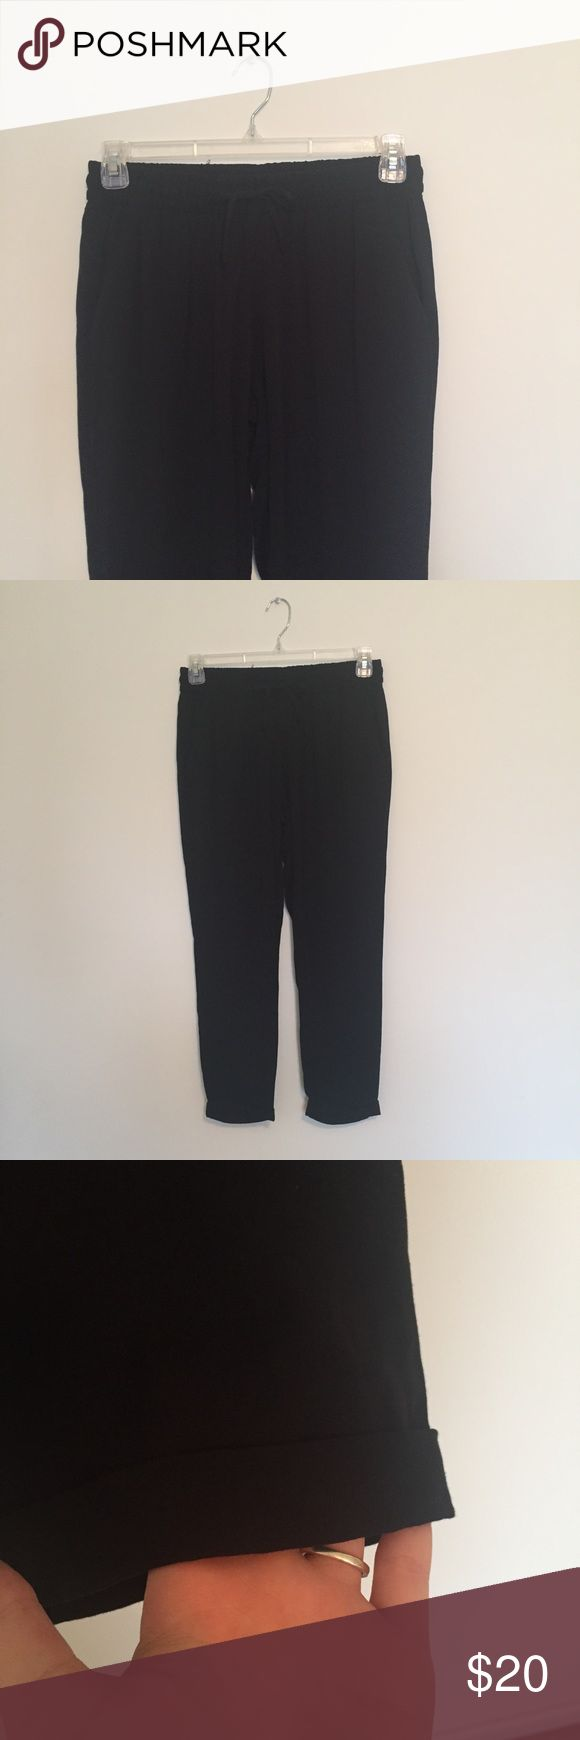 NWOT Business Casual Cuffed Joggers Never worn and in perfect condition. Casual black joggers made out of an almost silky material. Perfect to dress up with heels or nice flats and a button down for a business meeting. Or wear them with tees and converse. Have real pockets on the front and faux pockets on the back. Ties up with a drawstring. * NO TRADES * Old Navy Pants